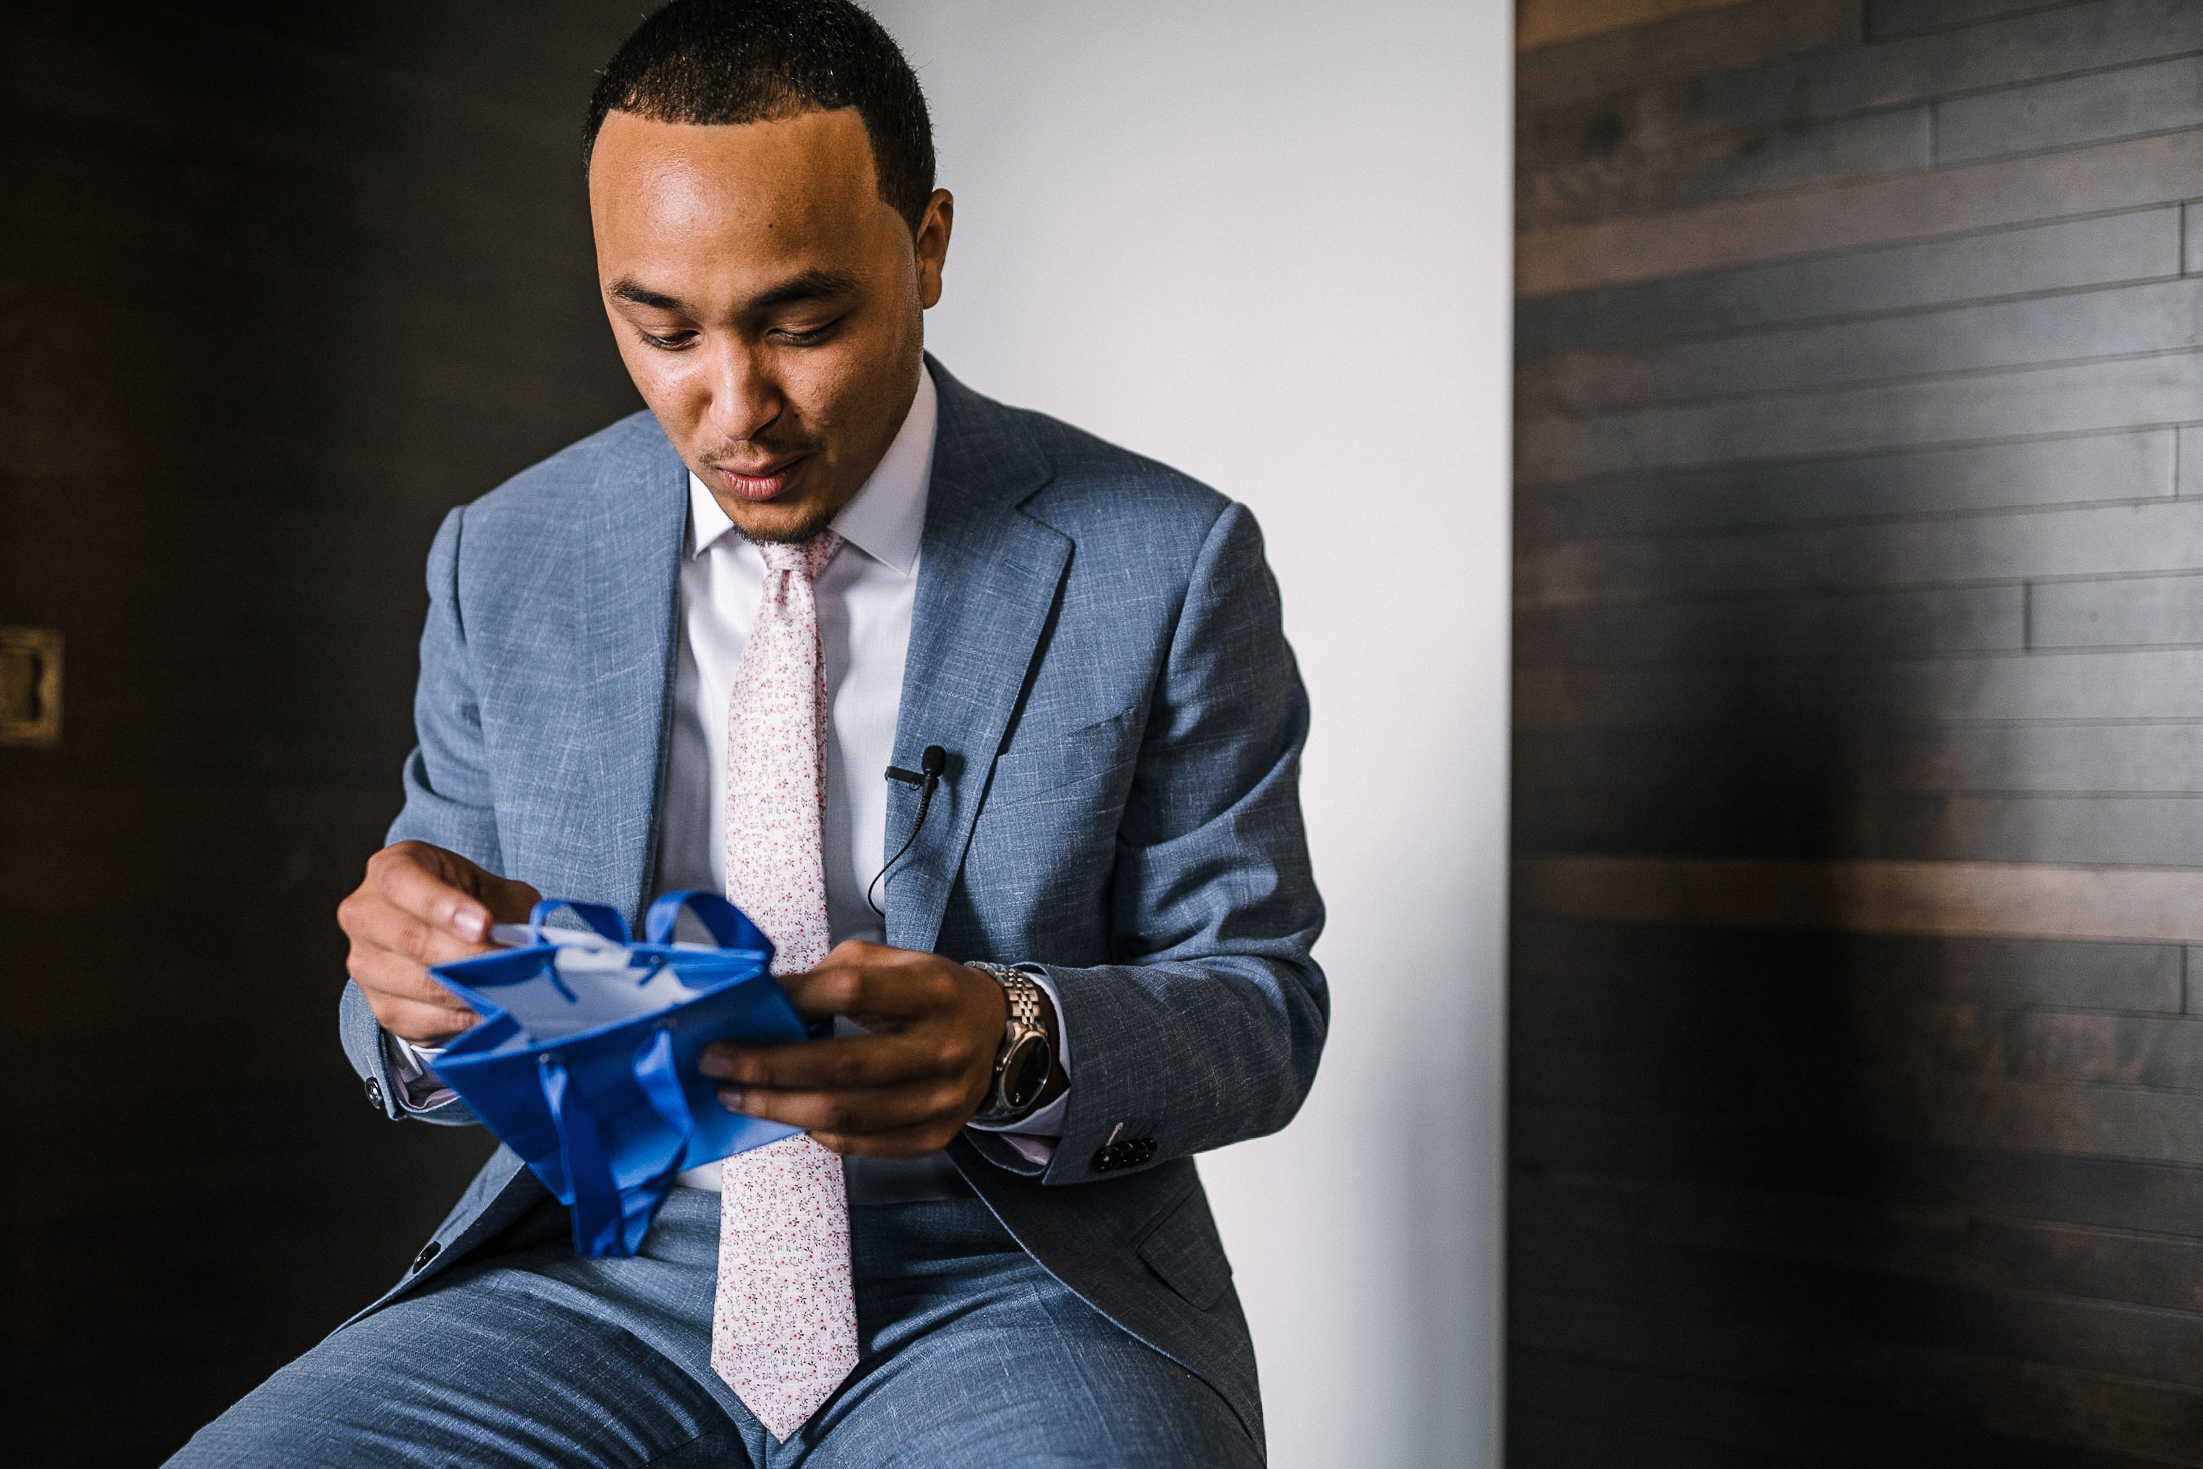 groom opening gift from bride at The Park Hyatt Hotel in Washington DC